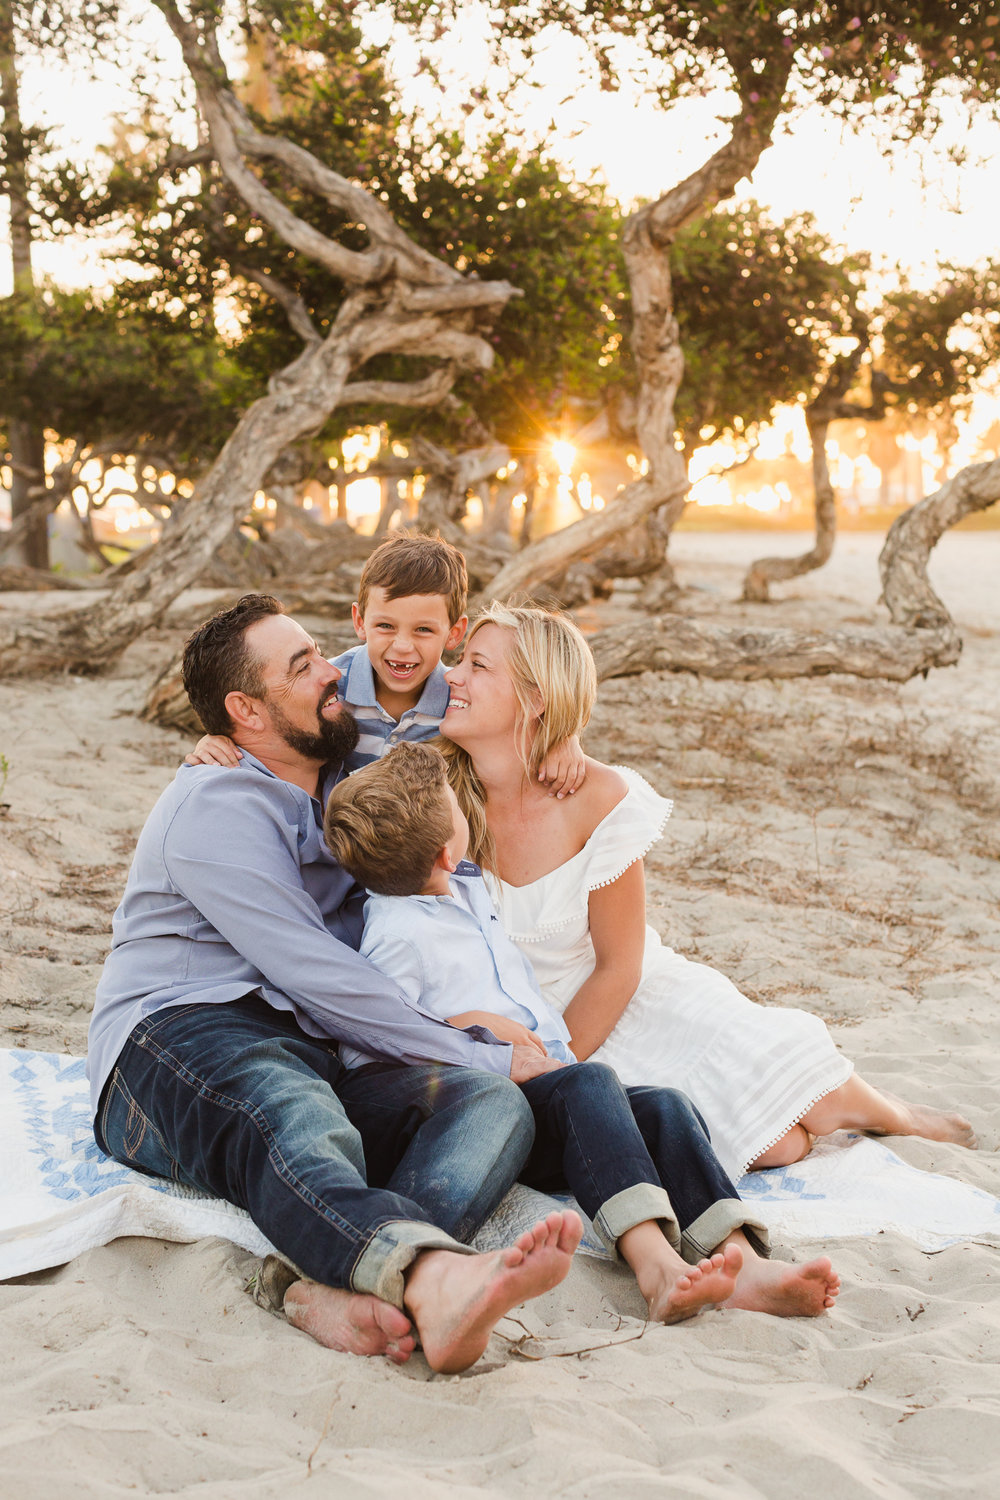 San-Diego-Family-Photographer-South-Mission-Beach-PF-WS-13.jpg